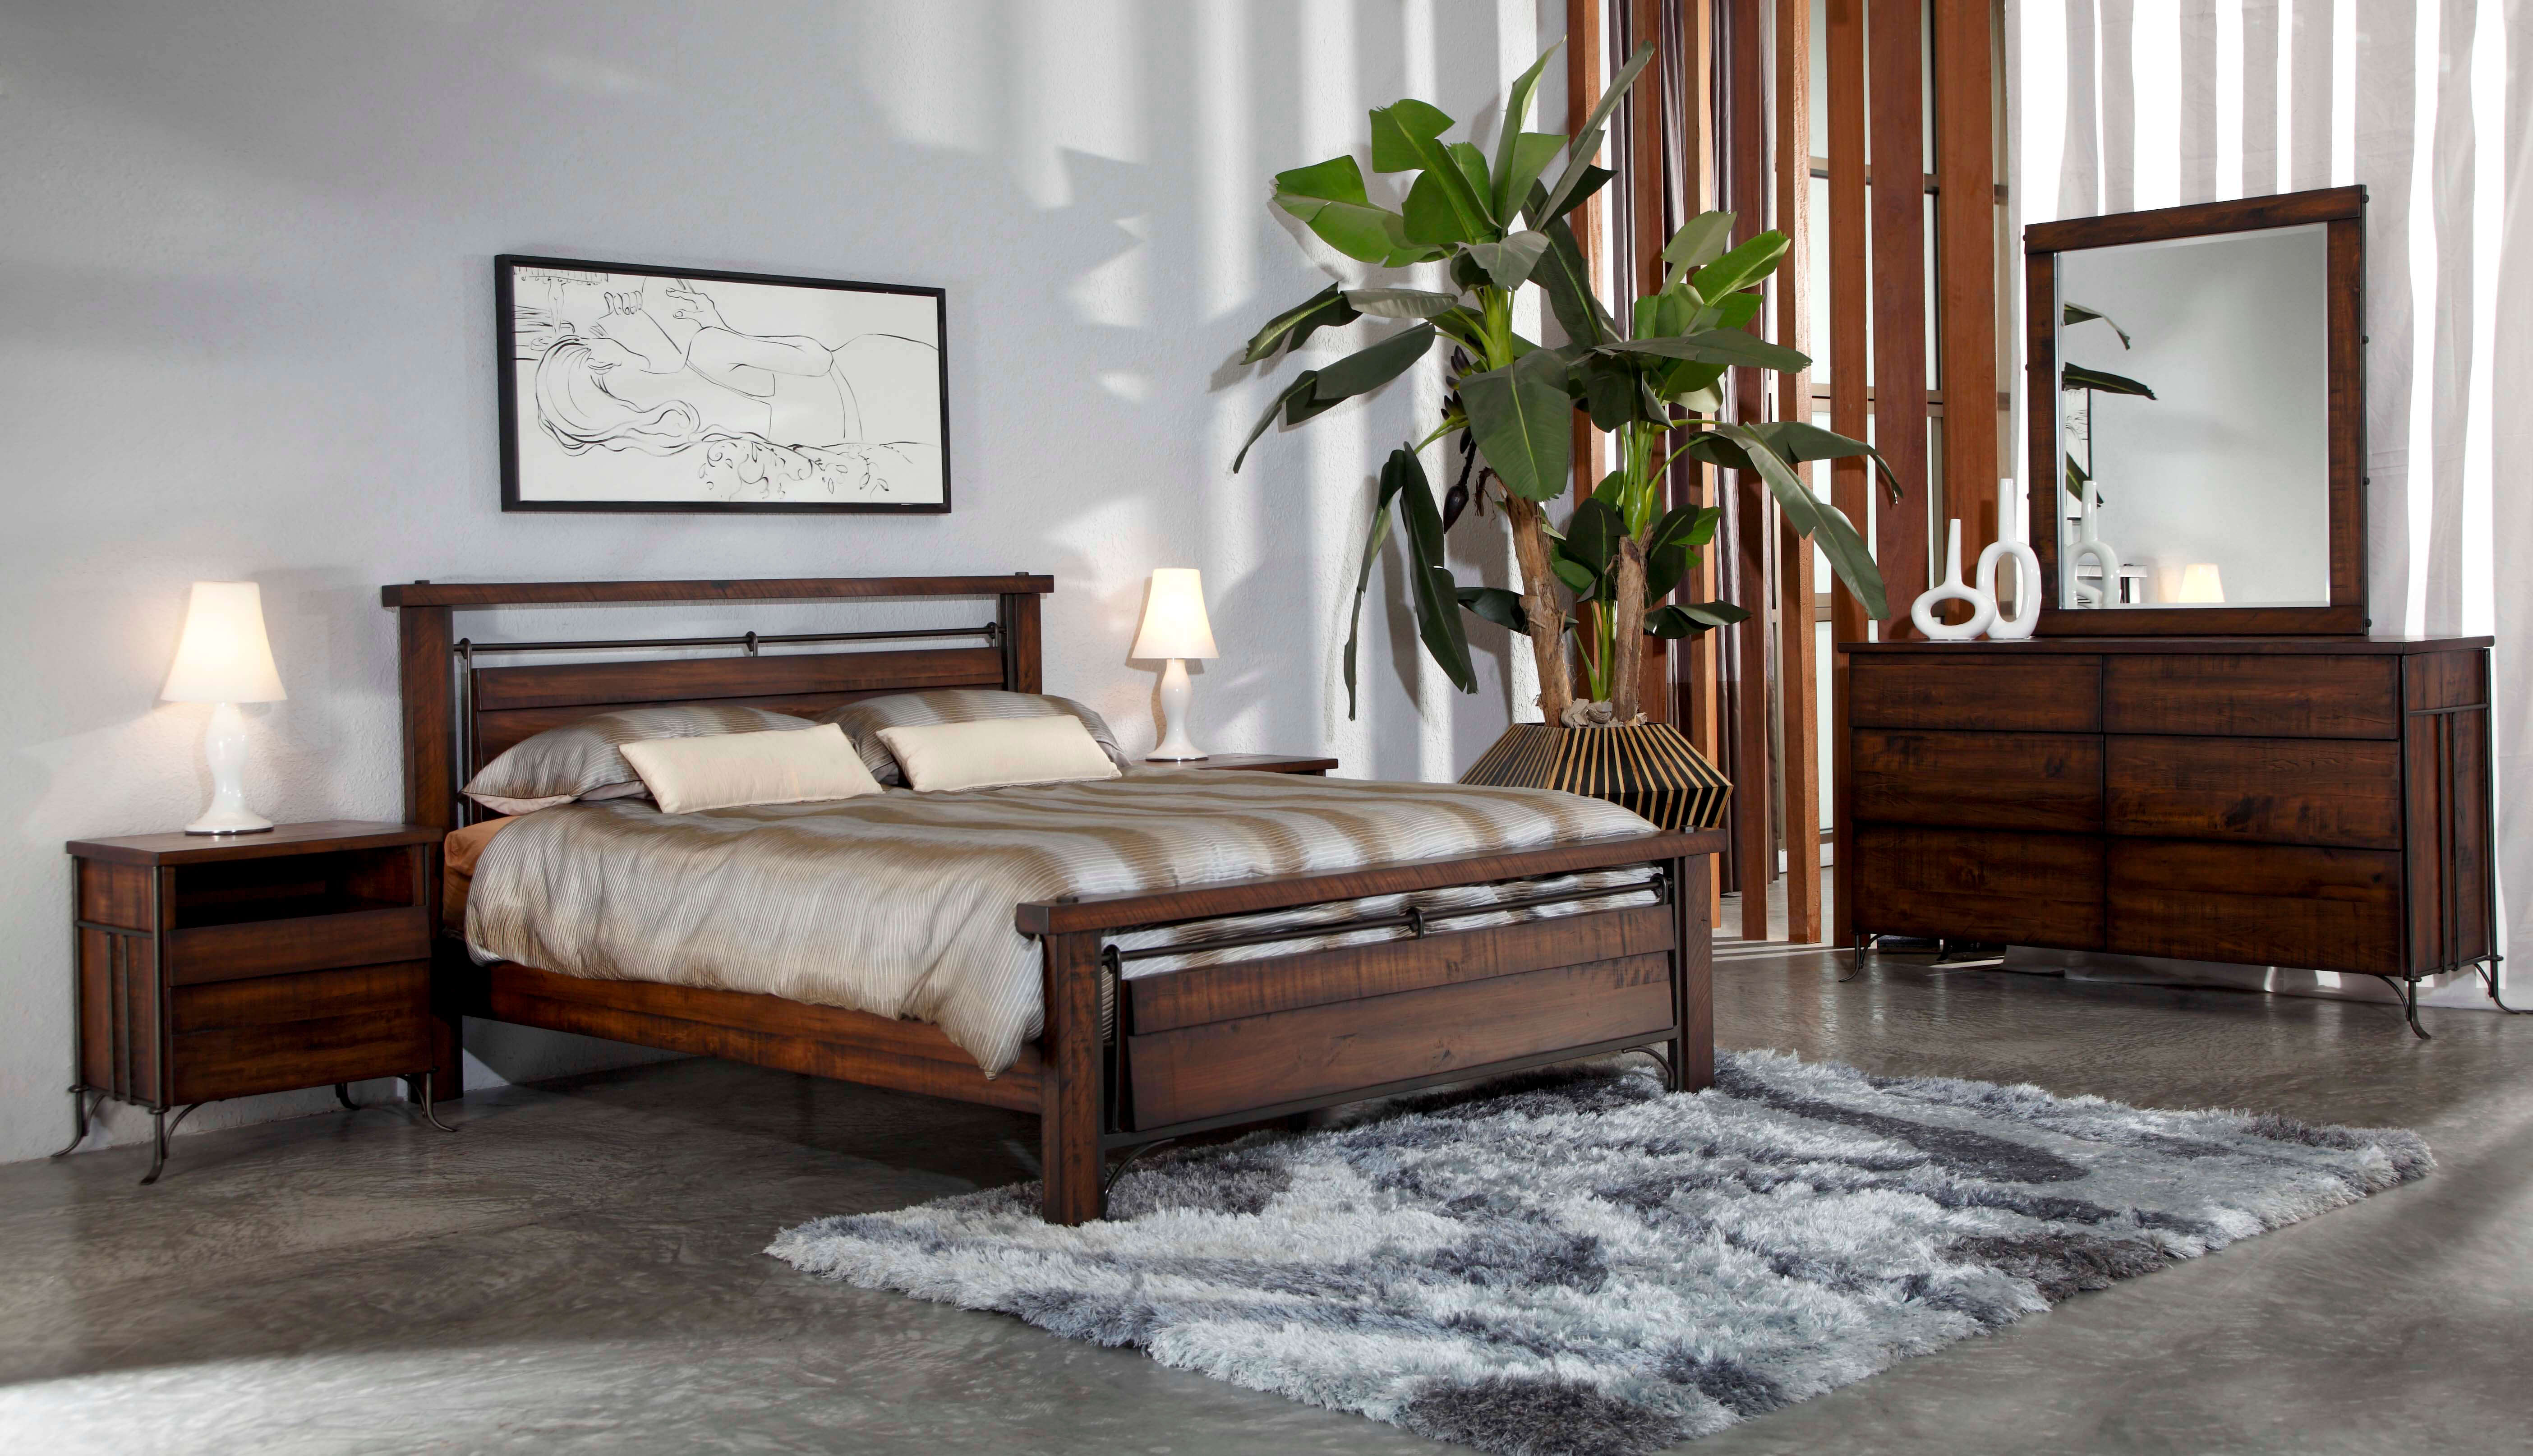 Forge bedroom set by quality bedroom seattle for Quality bedroom furniture sets